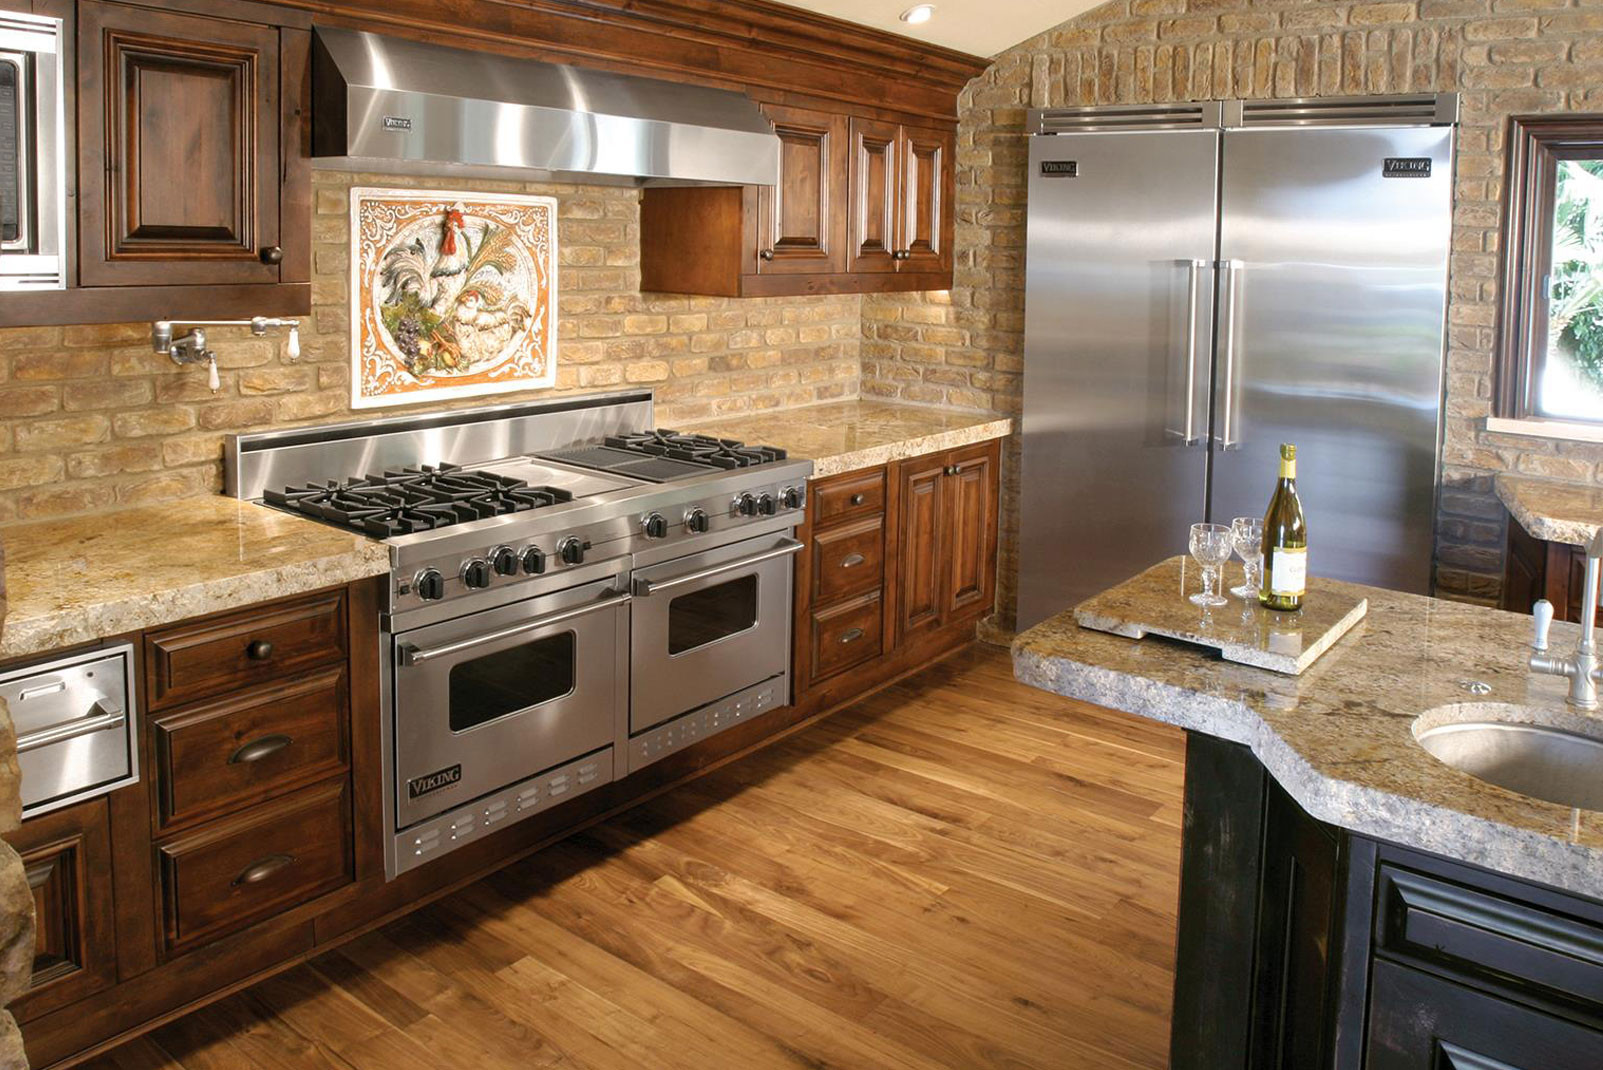 arizona hardwood floor supply inc gilbert az of stone creek furniture furniture the way you want it in kitchen remodeling